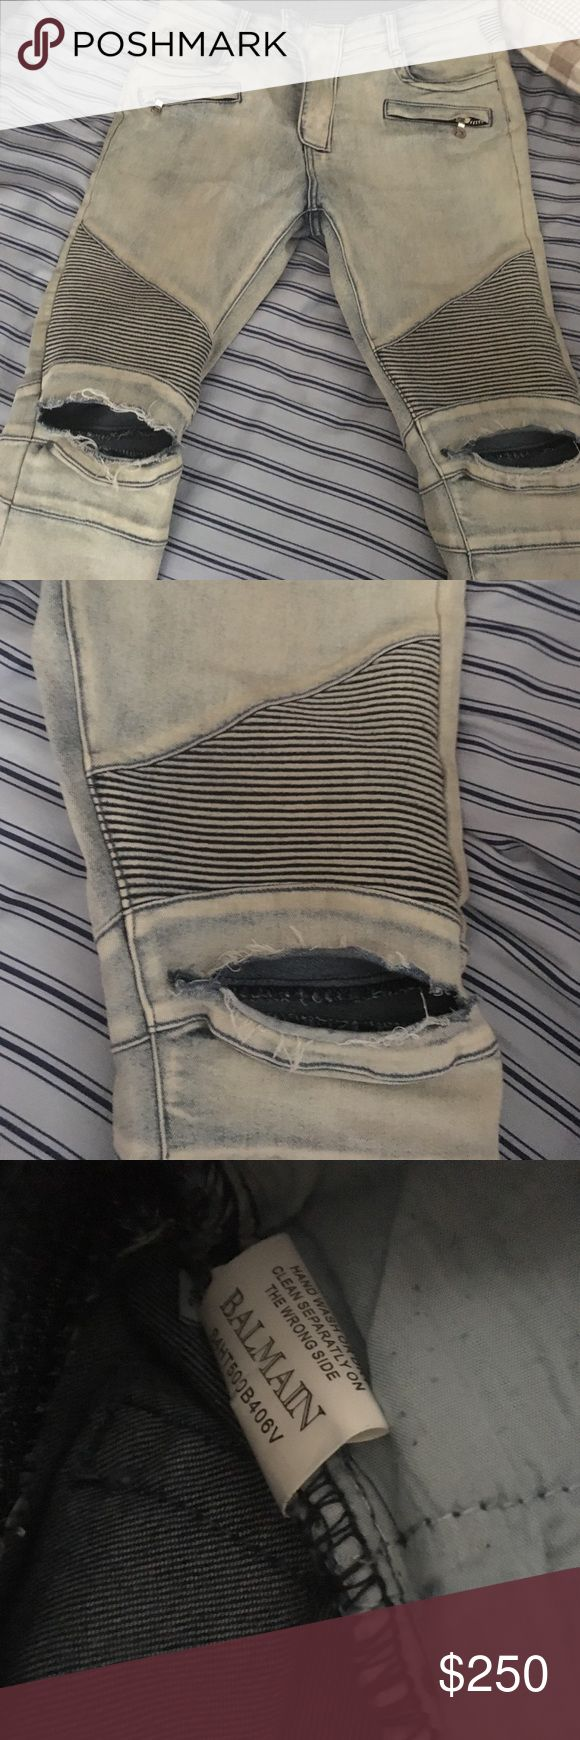 Balmain Paris 32 light blue distressed biker jeans Up for sale are Balmain light blue distressed biker jeans. These pants fit a size 32 waist men and are in great condition. Let me know if you have any questions. Thanks Balmain Jeans Skinny